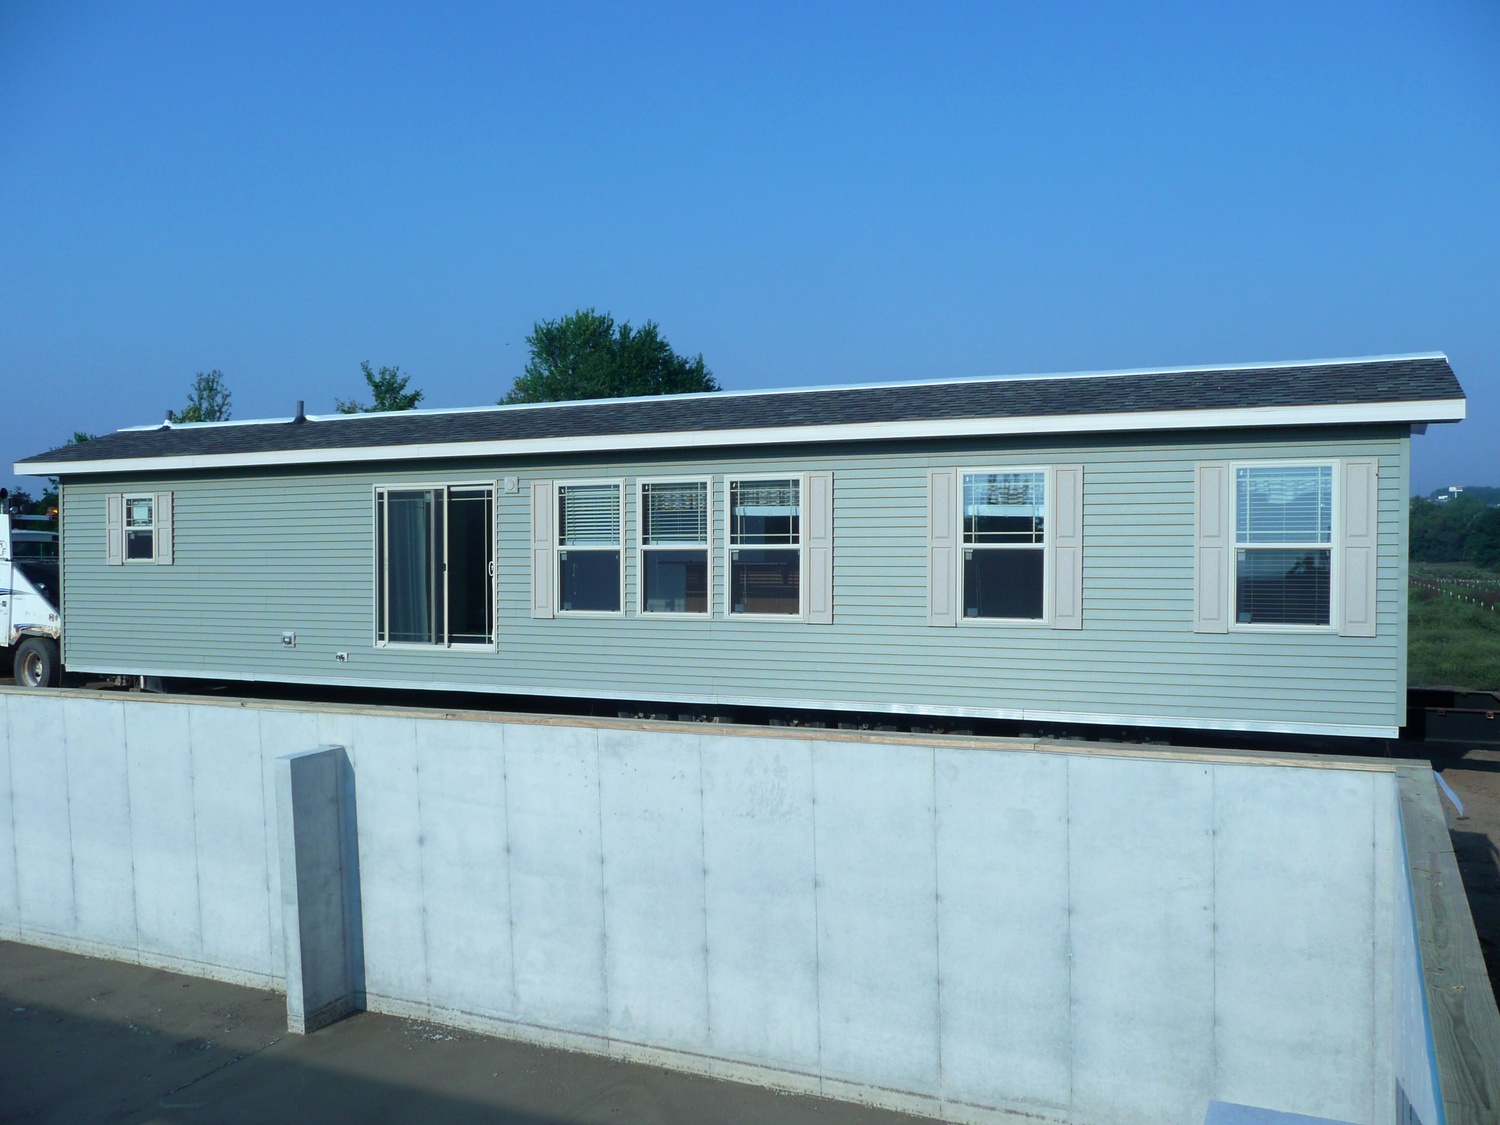 Photos sharp mobile homes experience matters for Modular homes with basement